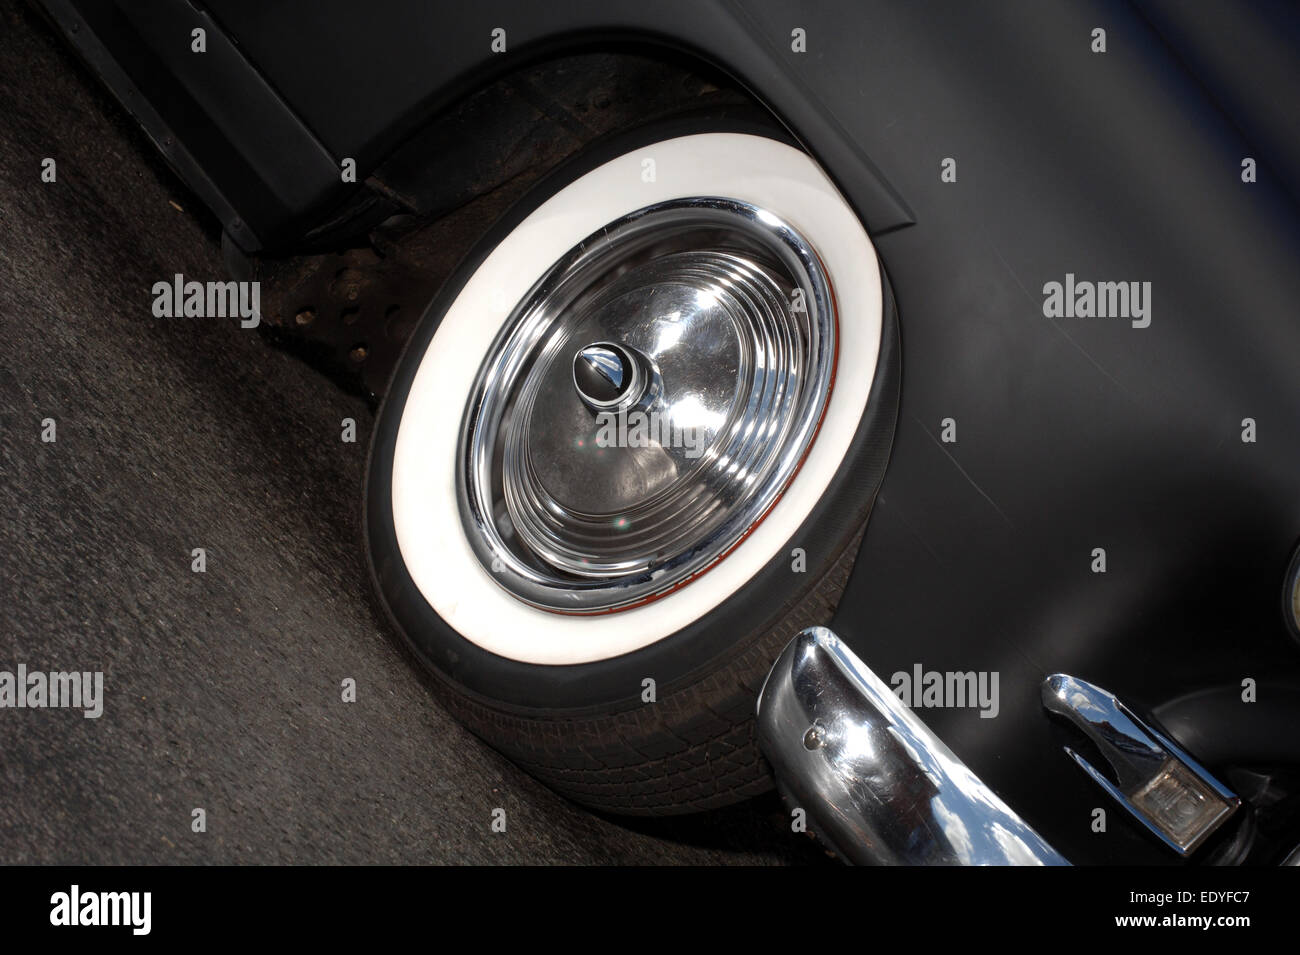 Chrome hubcap on a hot road car, ripple disk with smoothie centre and bullet cap - Stock Image